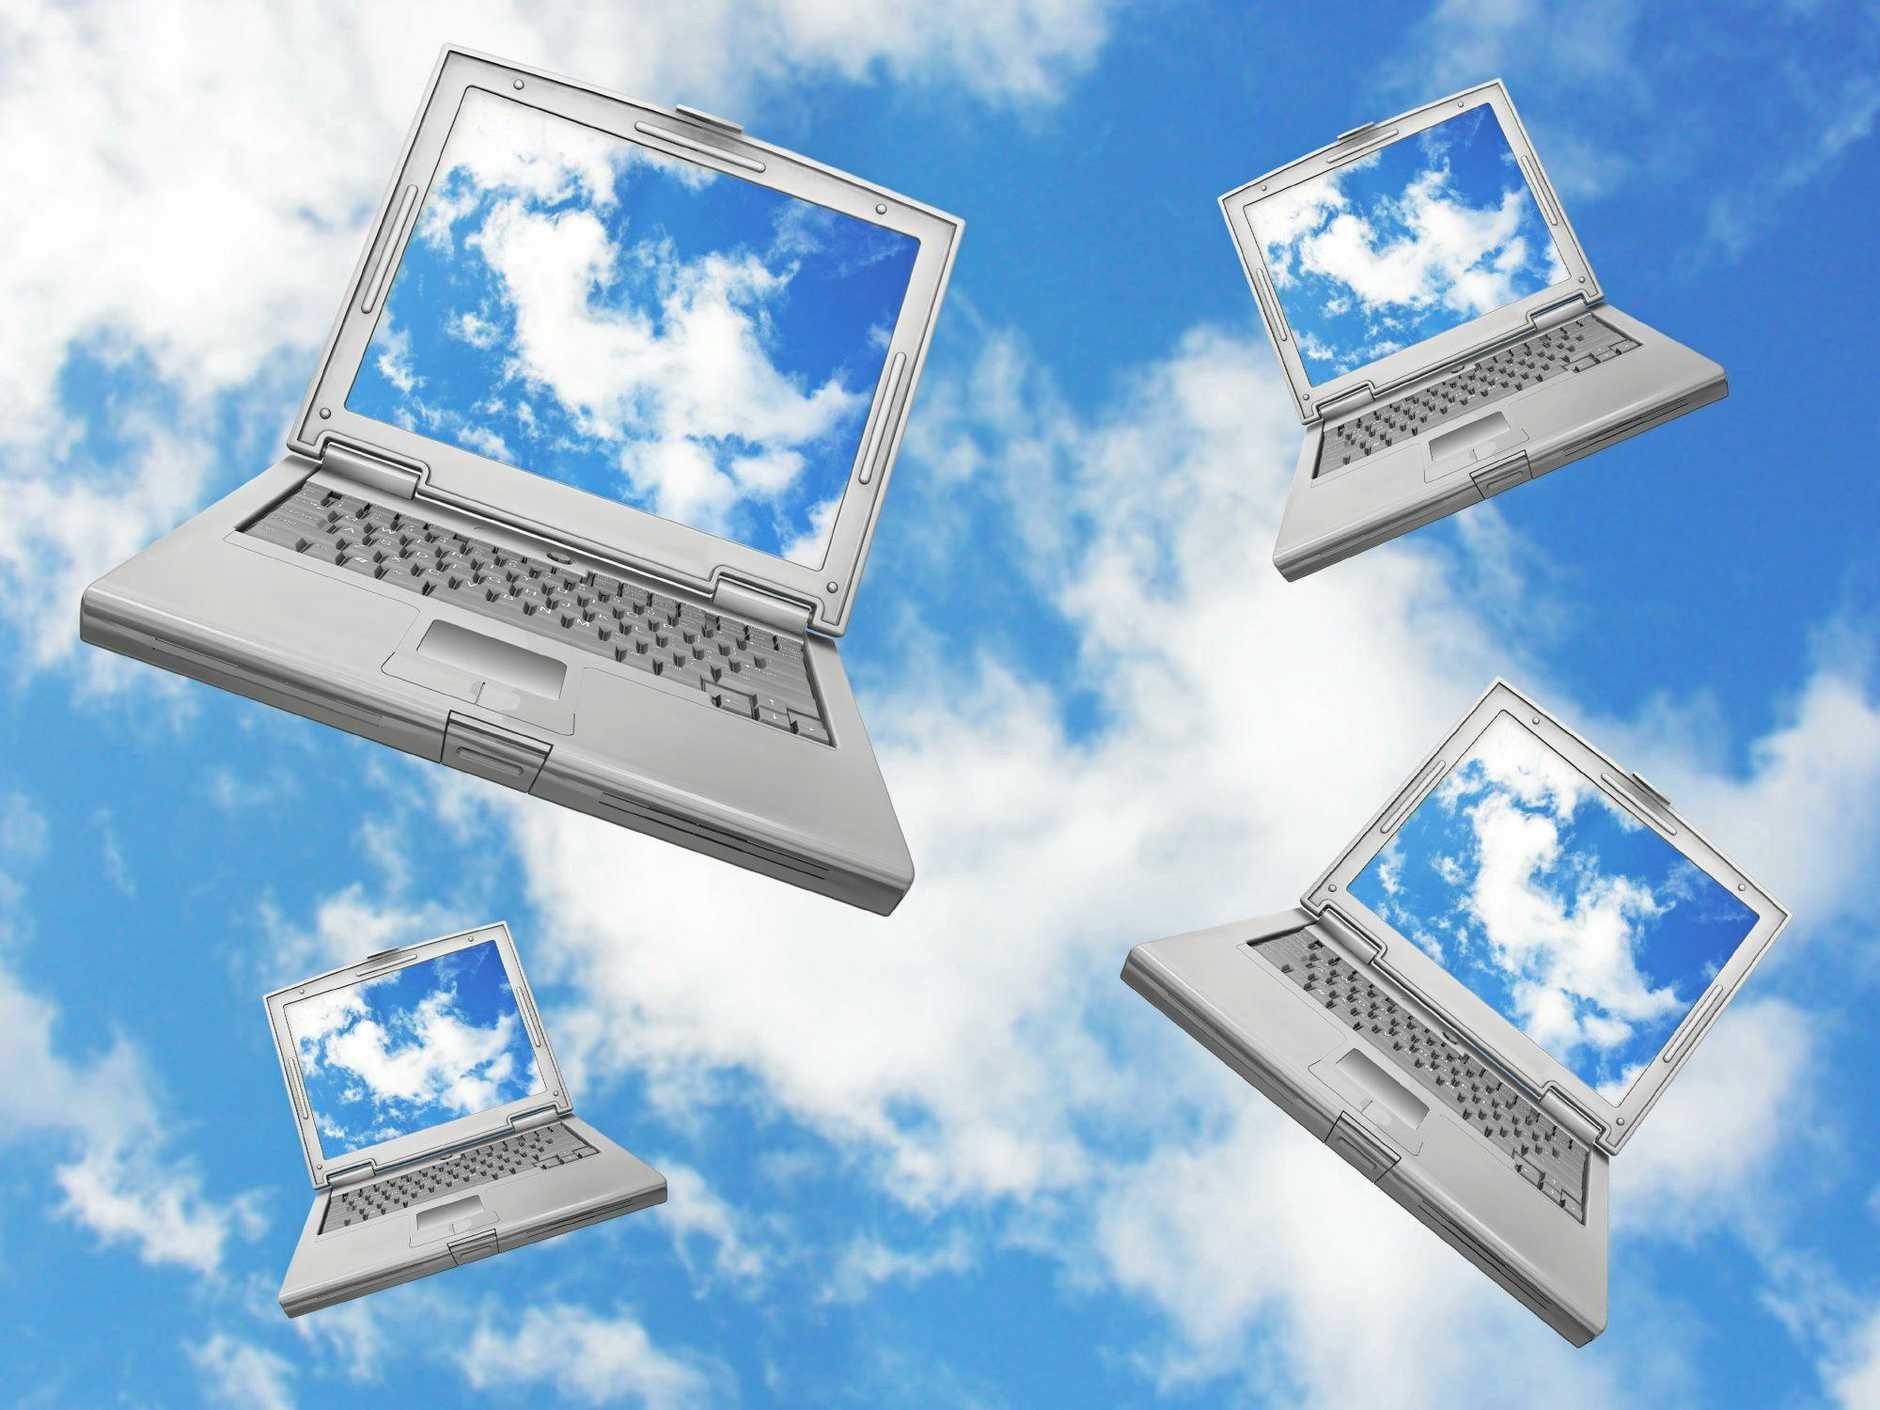 CLOUD EVERYTHING: Cloud-based storage is growing in popularity and facilities such as DropBox, iCloud and OneDrive are proving very popular and worthwhile. But you still need your computer technician.